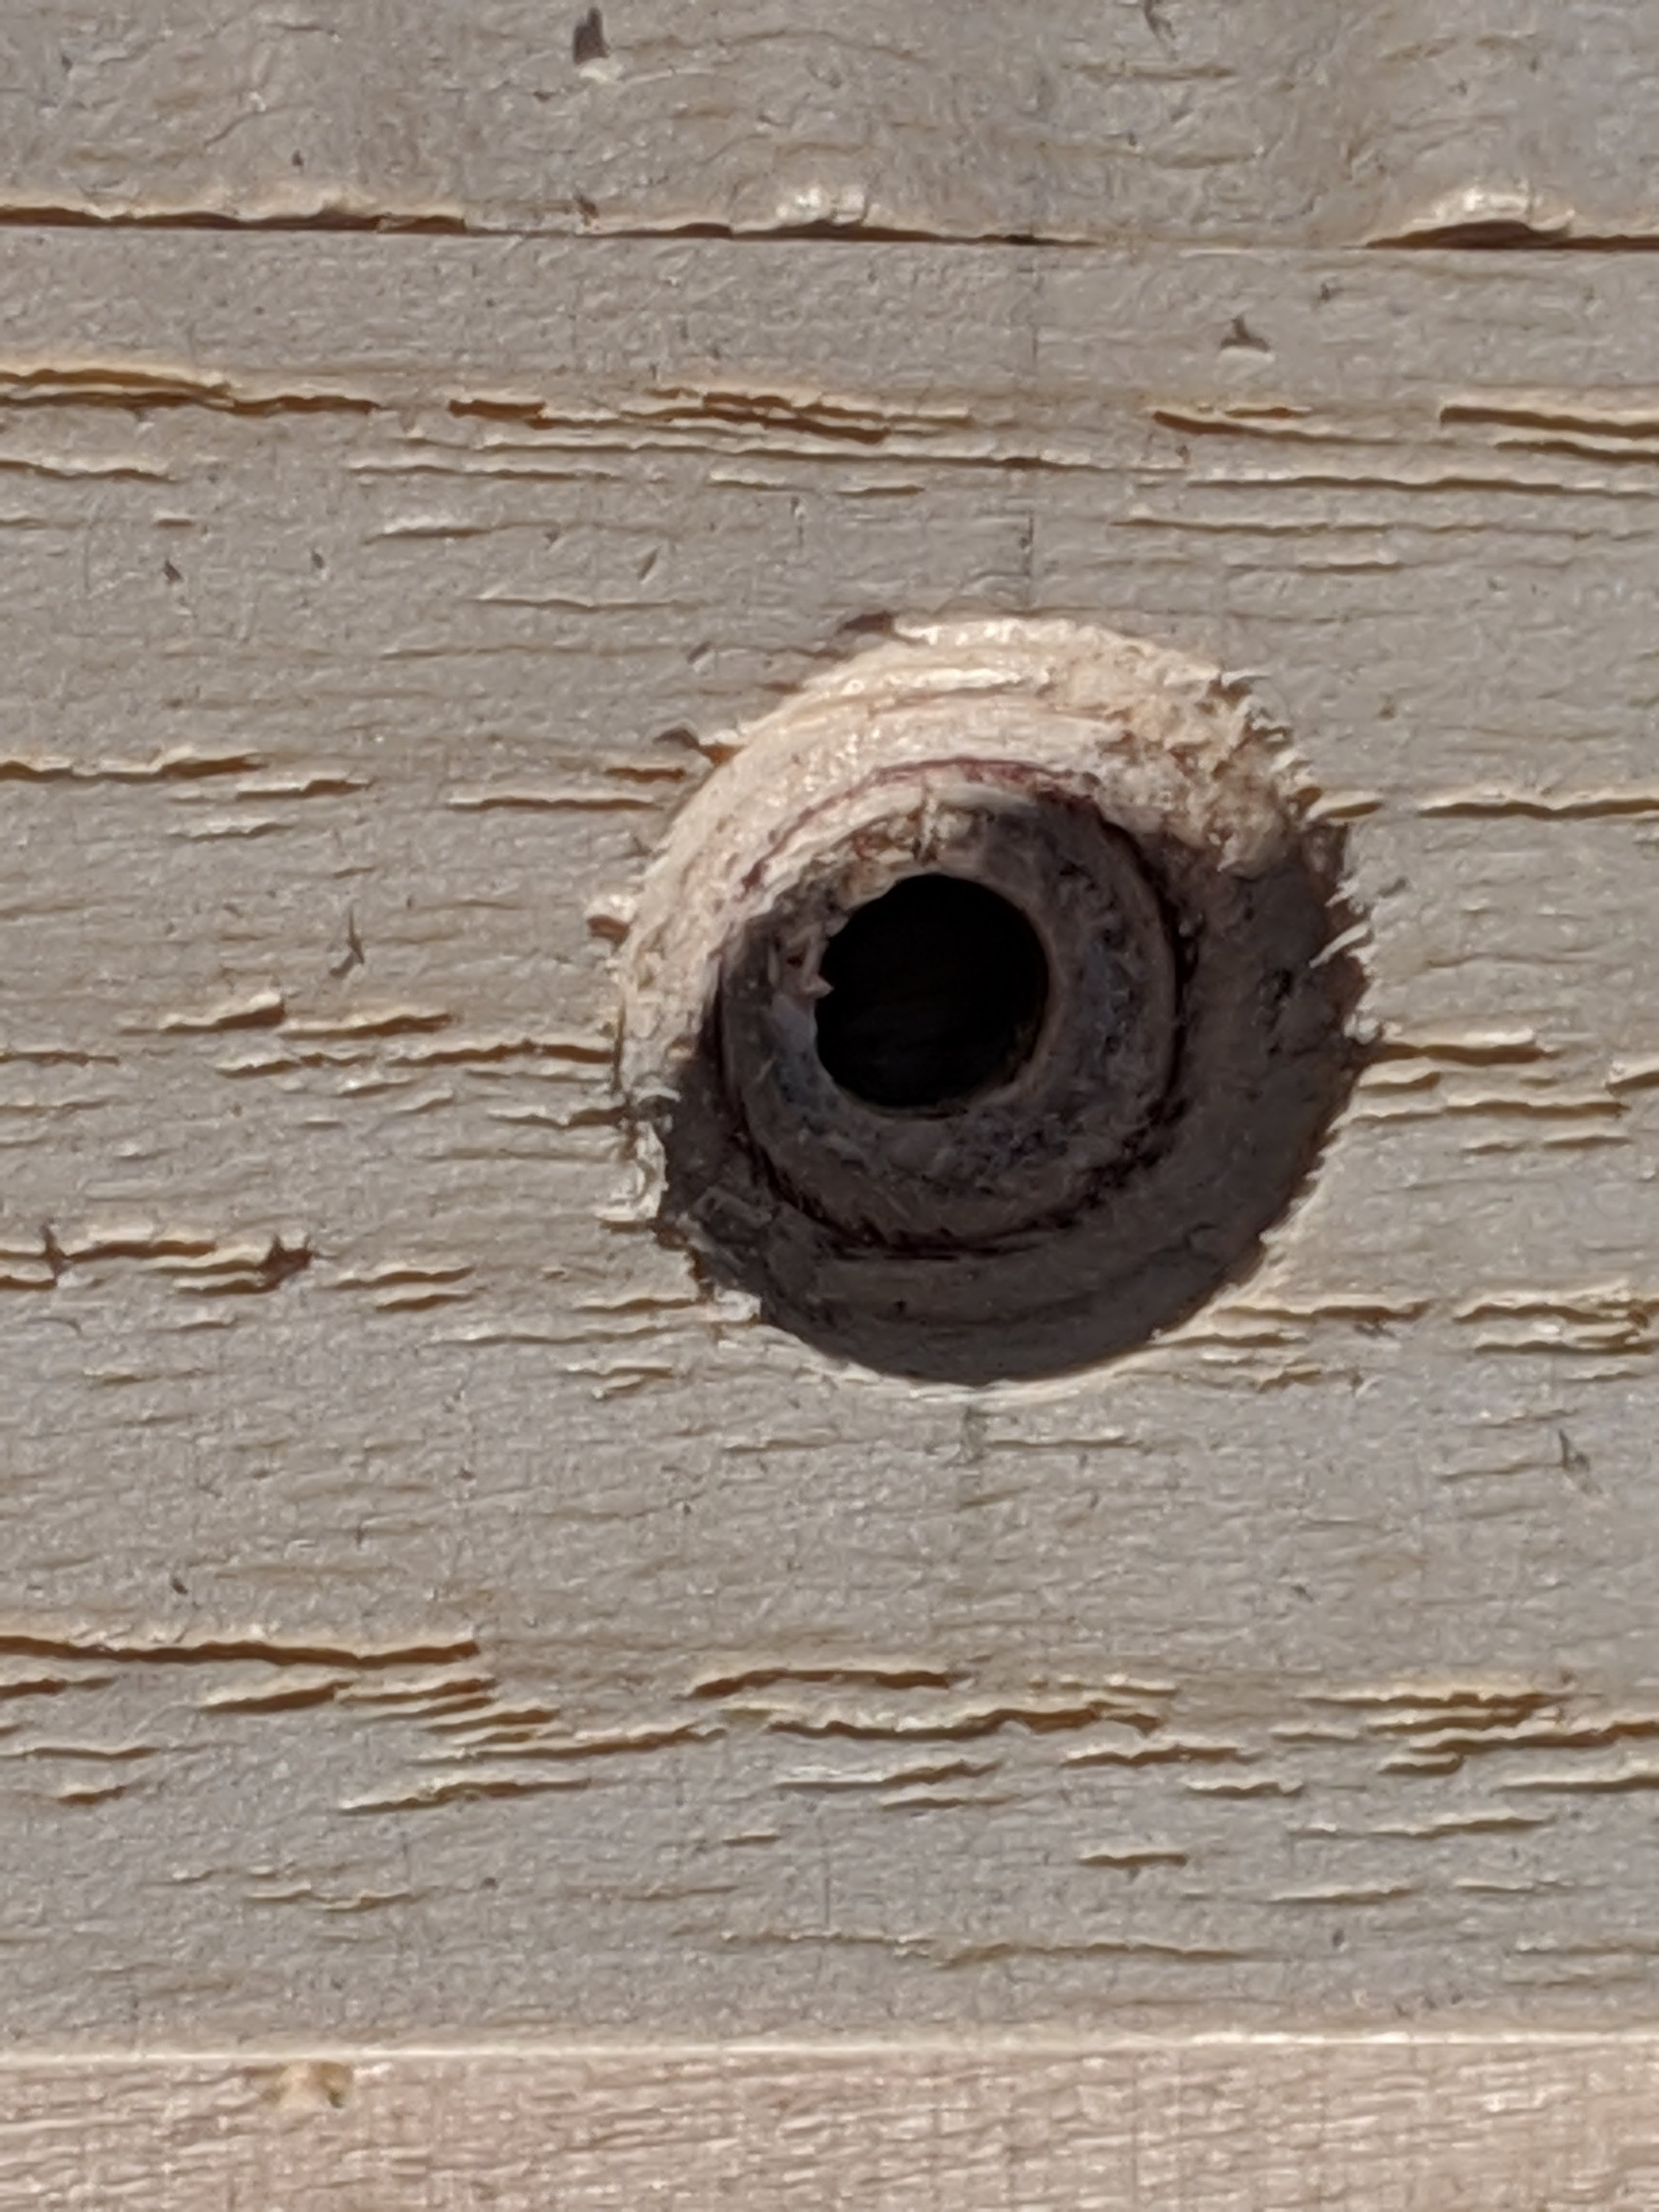 Resulting countersunk screw hole